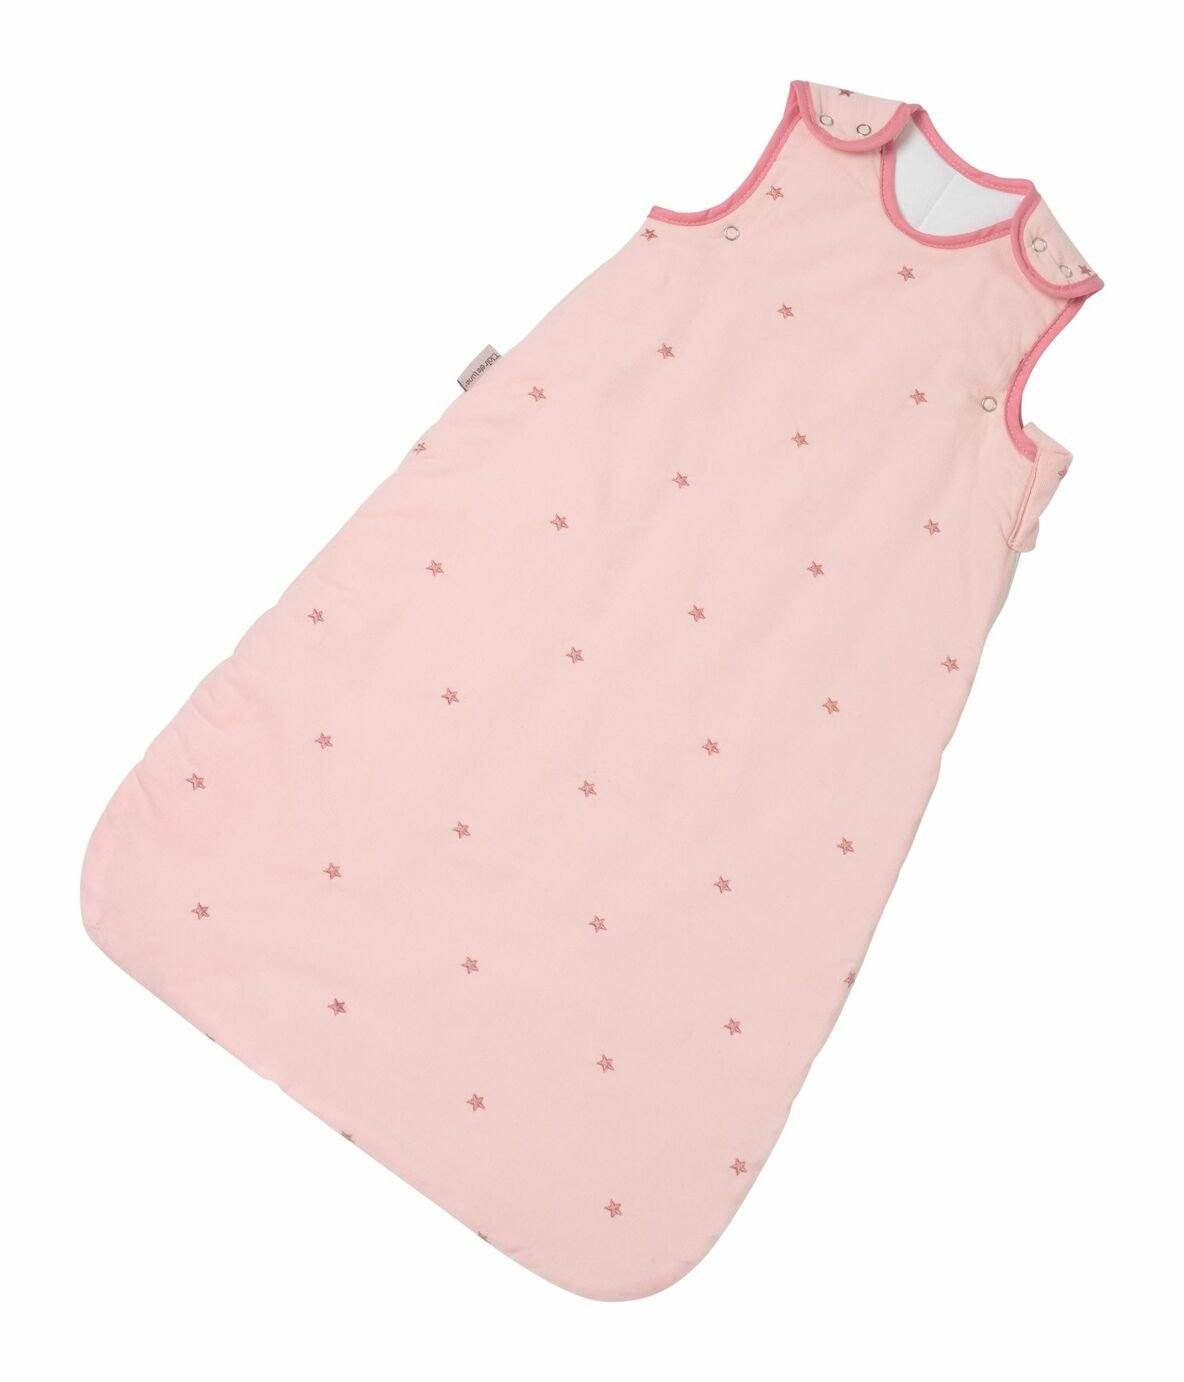 Clair de Lune Lullaby Stars Sleeping Bag 0 - 6 Months